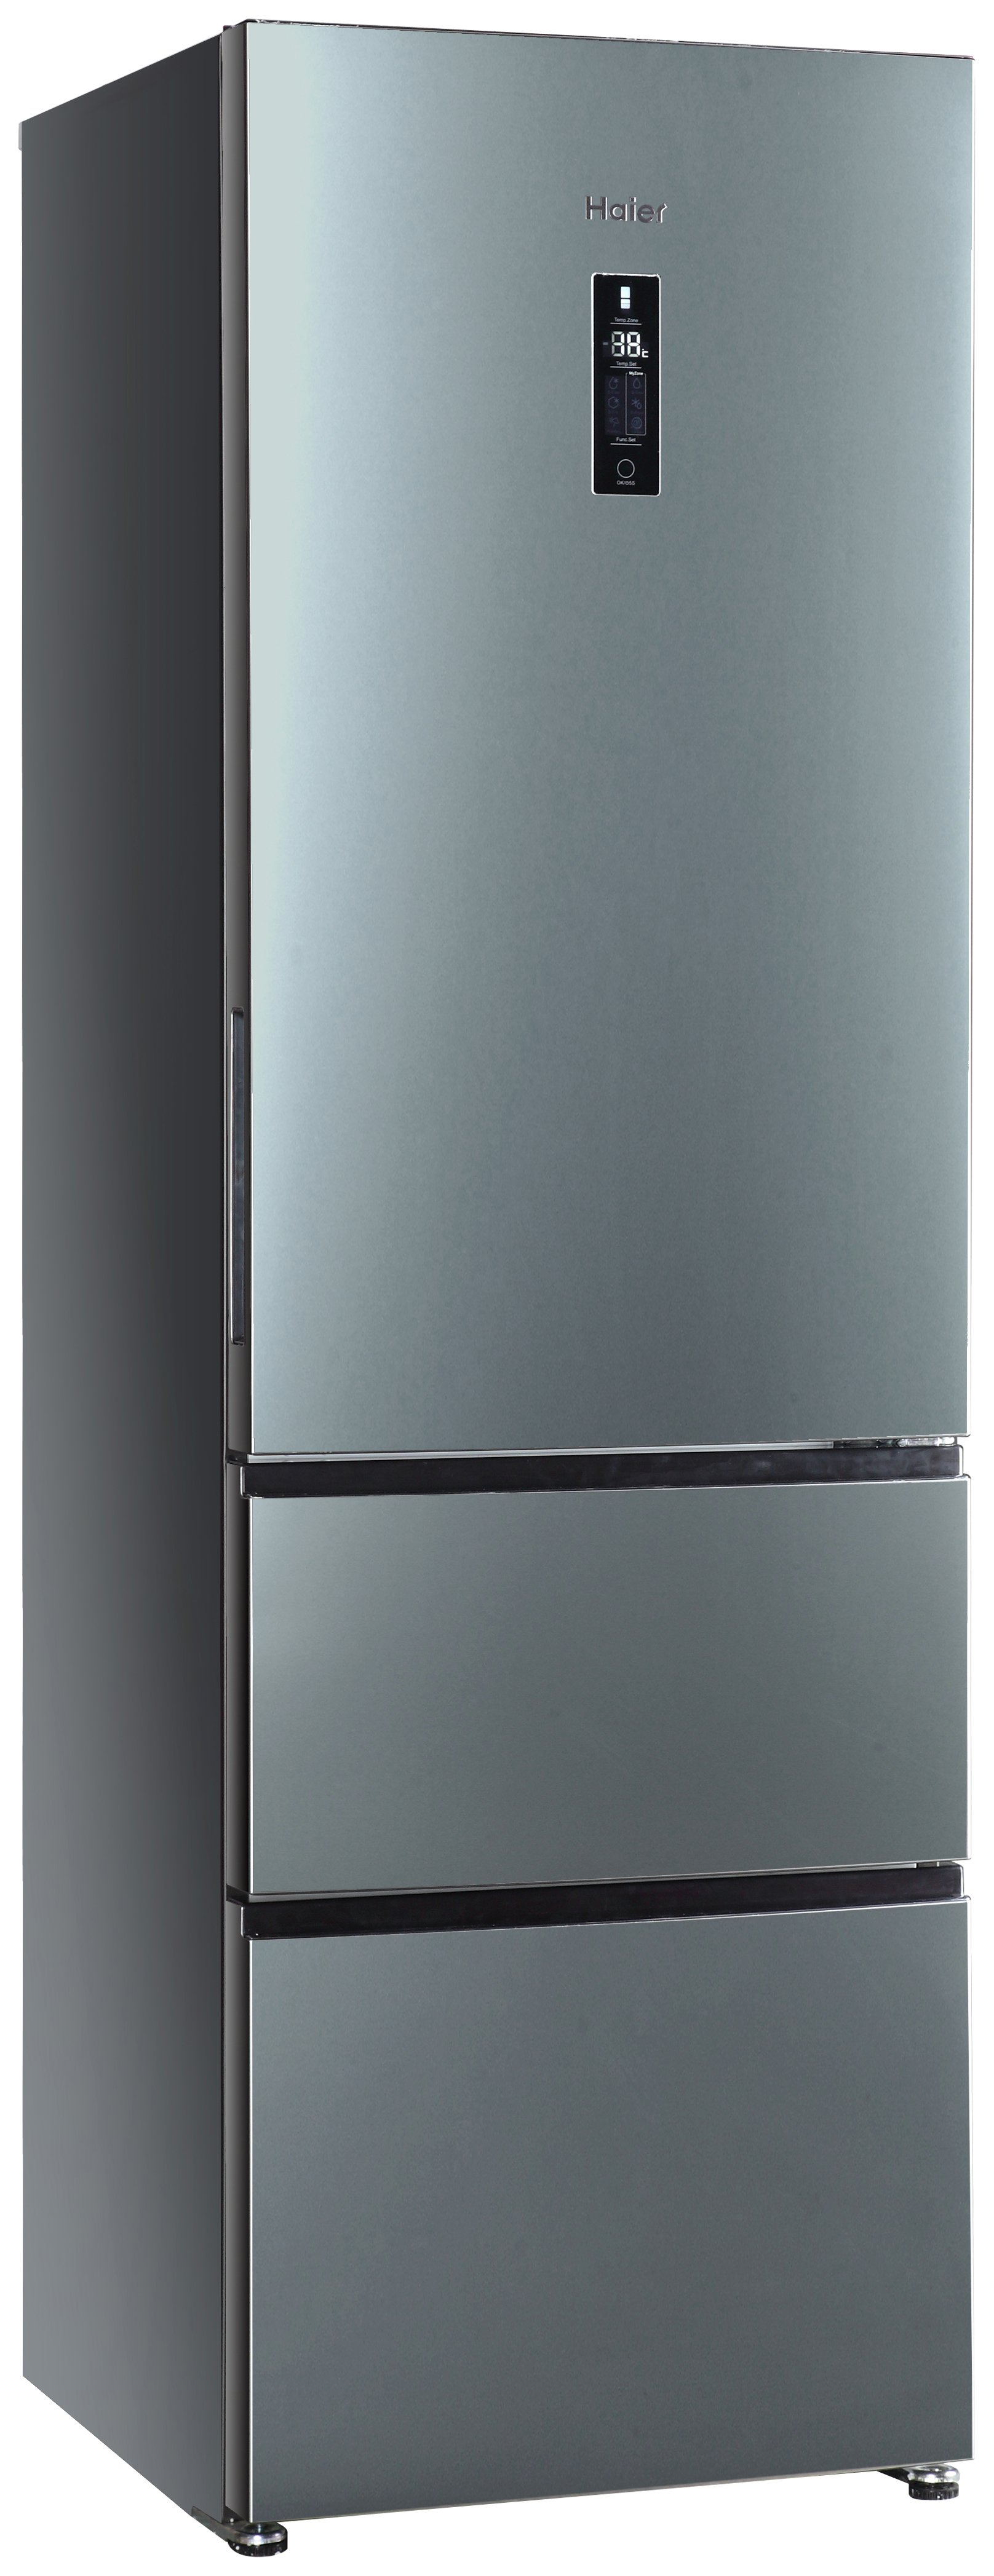 Image of Haier - A2FE635CFJ - Fridge Freezer - Stainless Steel